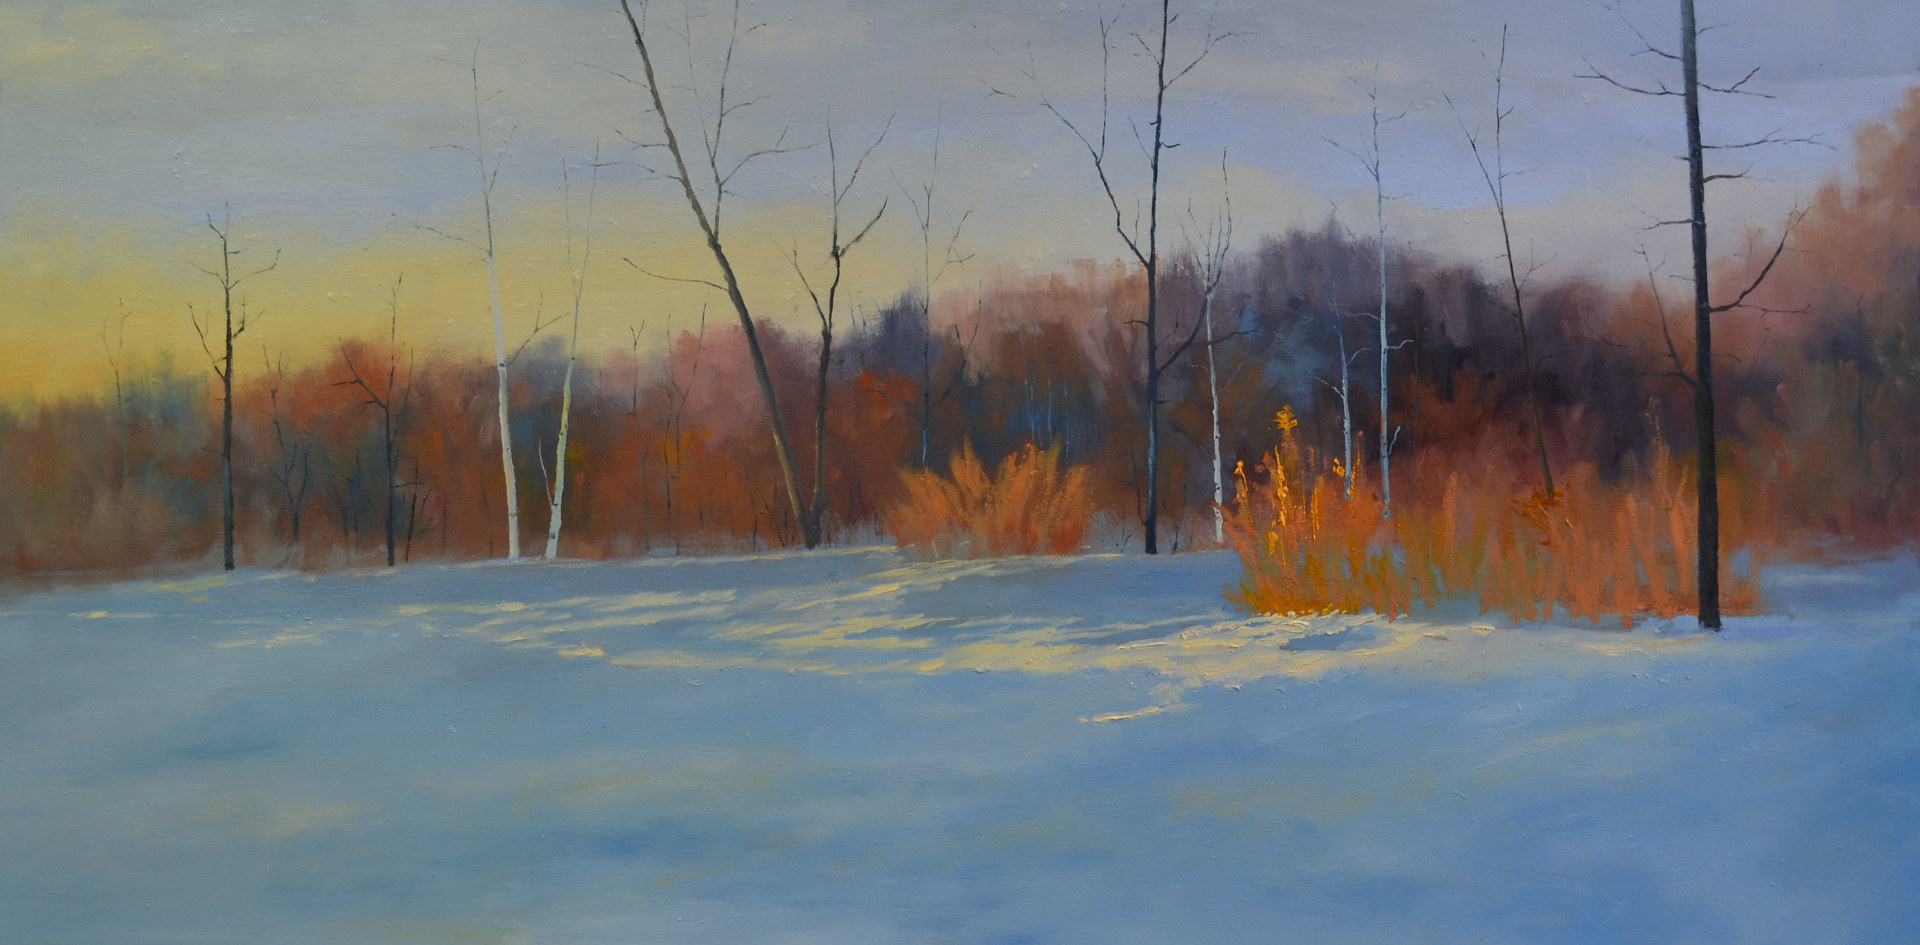 Sun Kissed Orange - 18 x 36, oil on profile cradled wood panel - 14-18  SOLD by Patricia Savoie